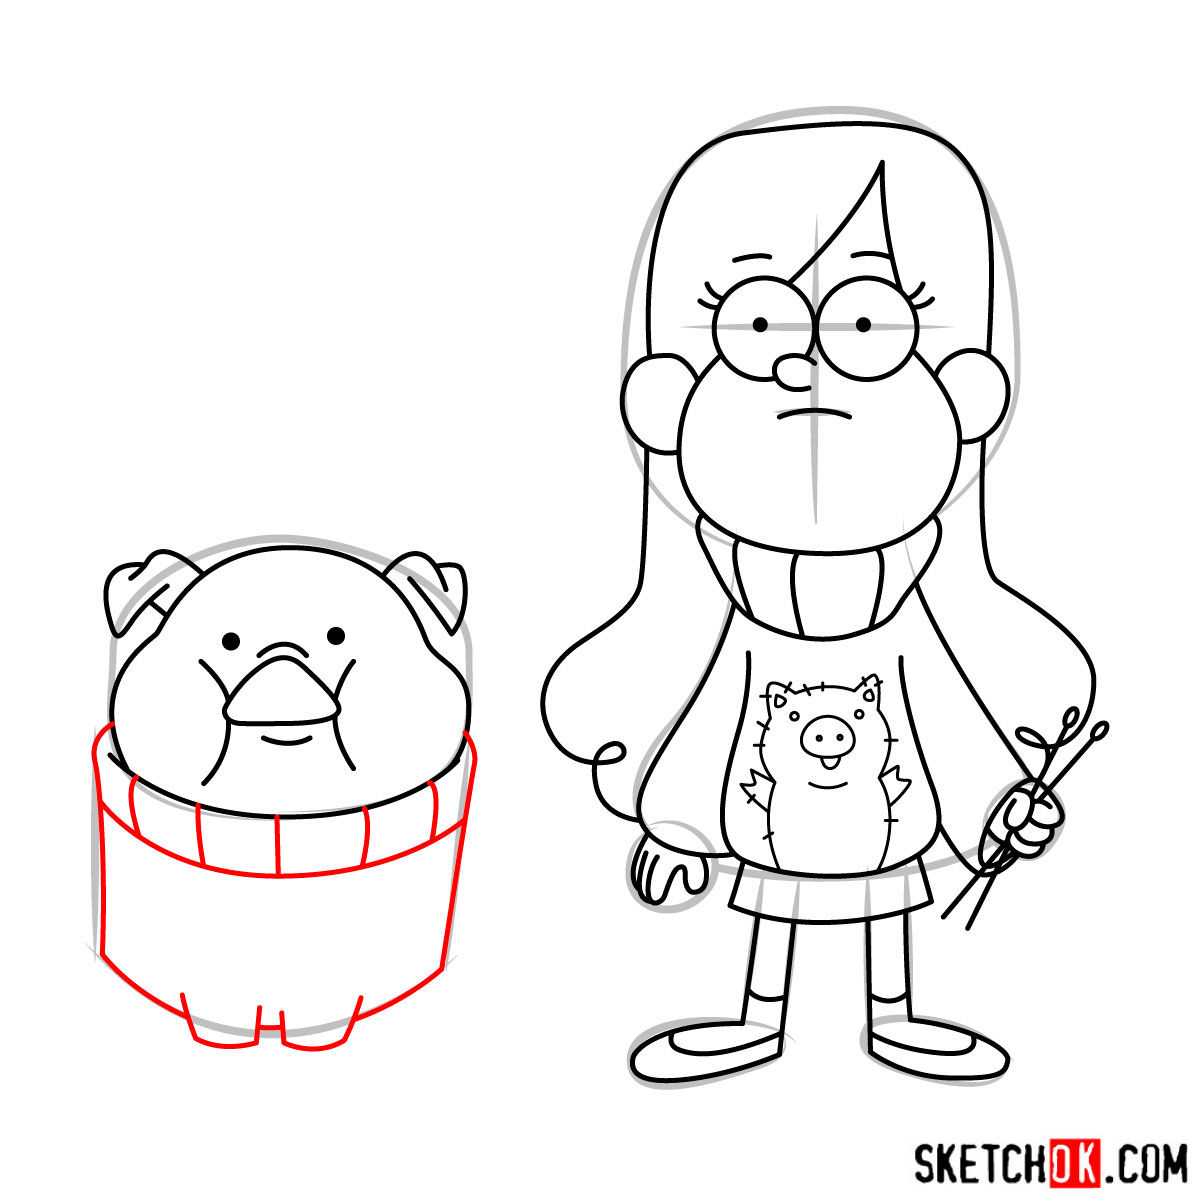 How to draw Mabel Pines with Pig - step 14